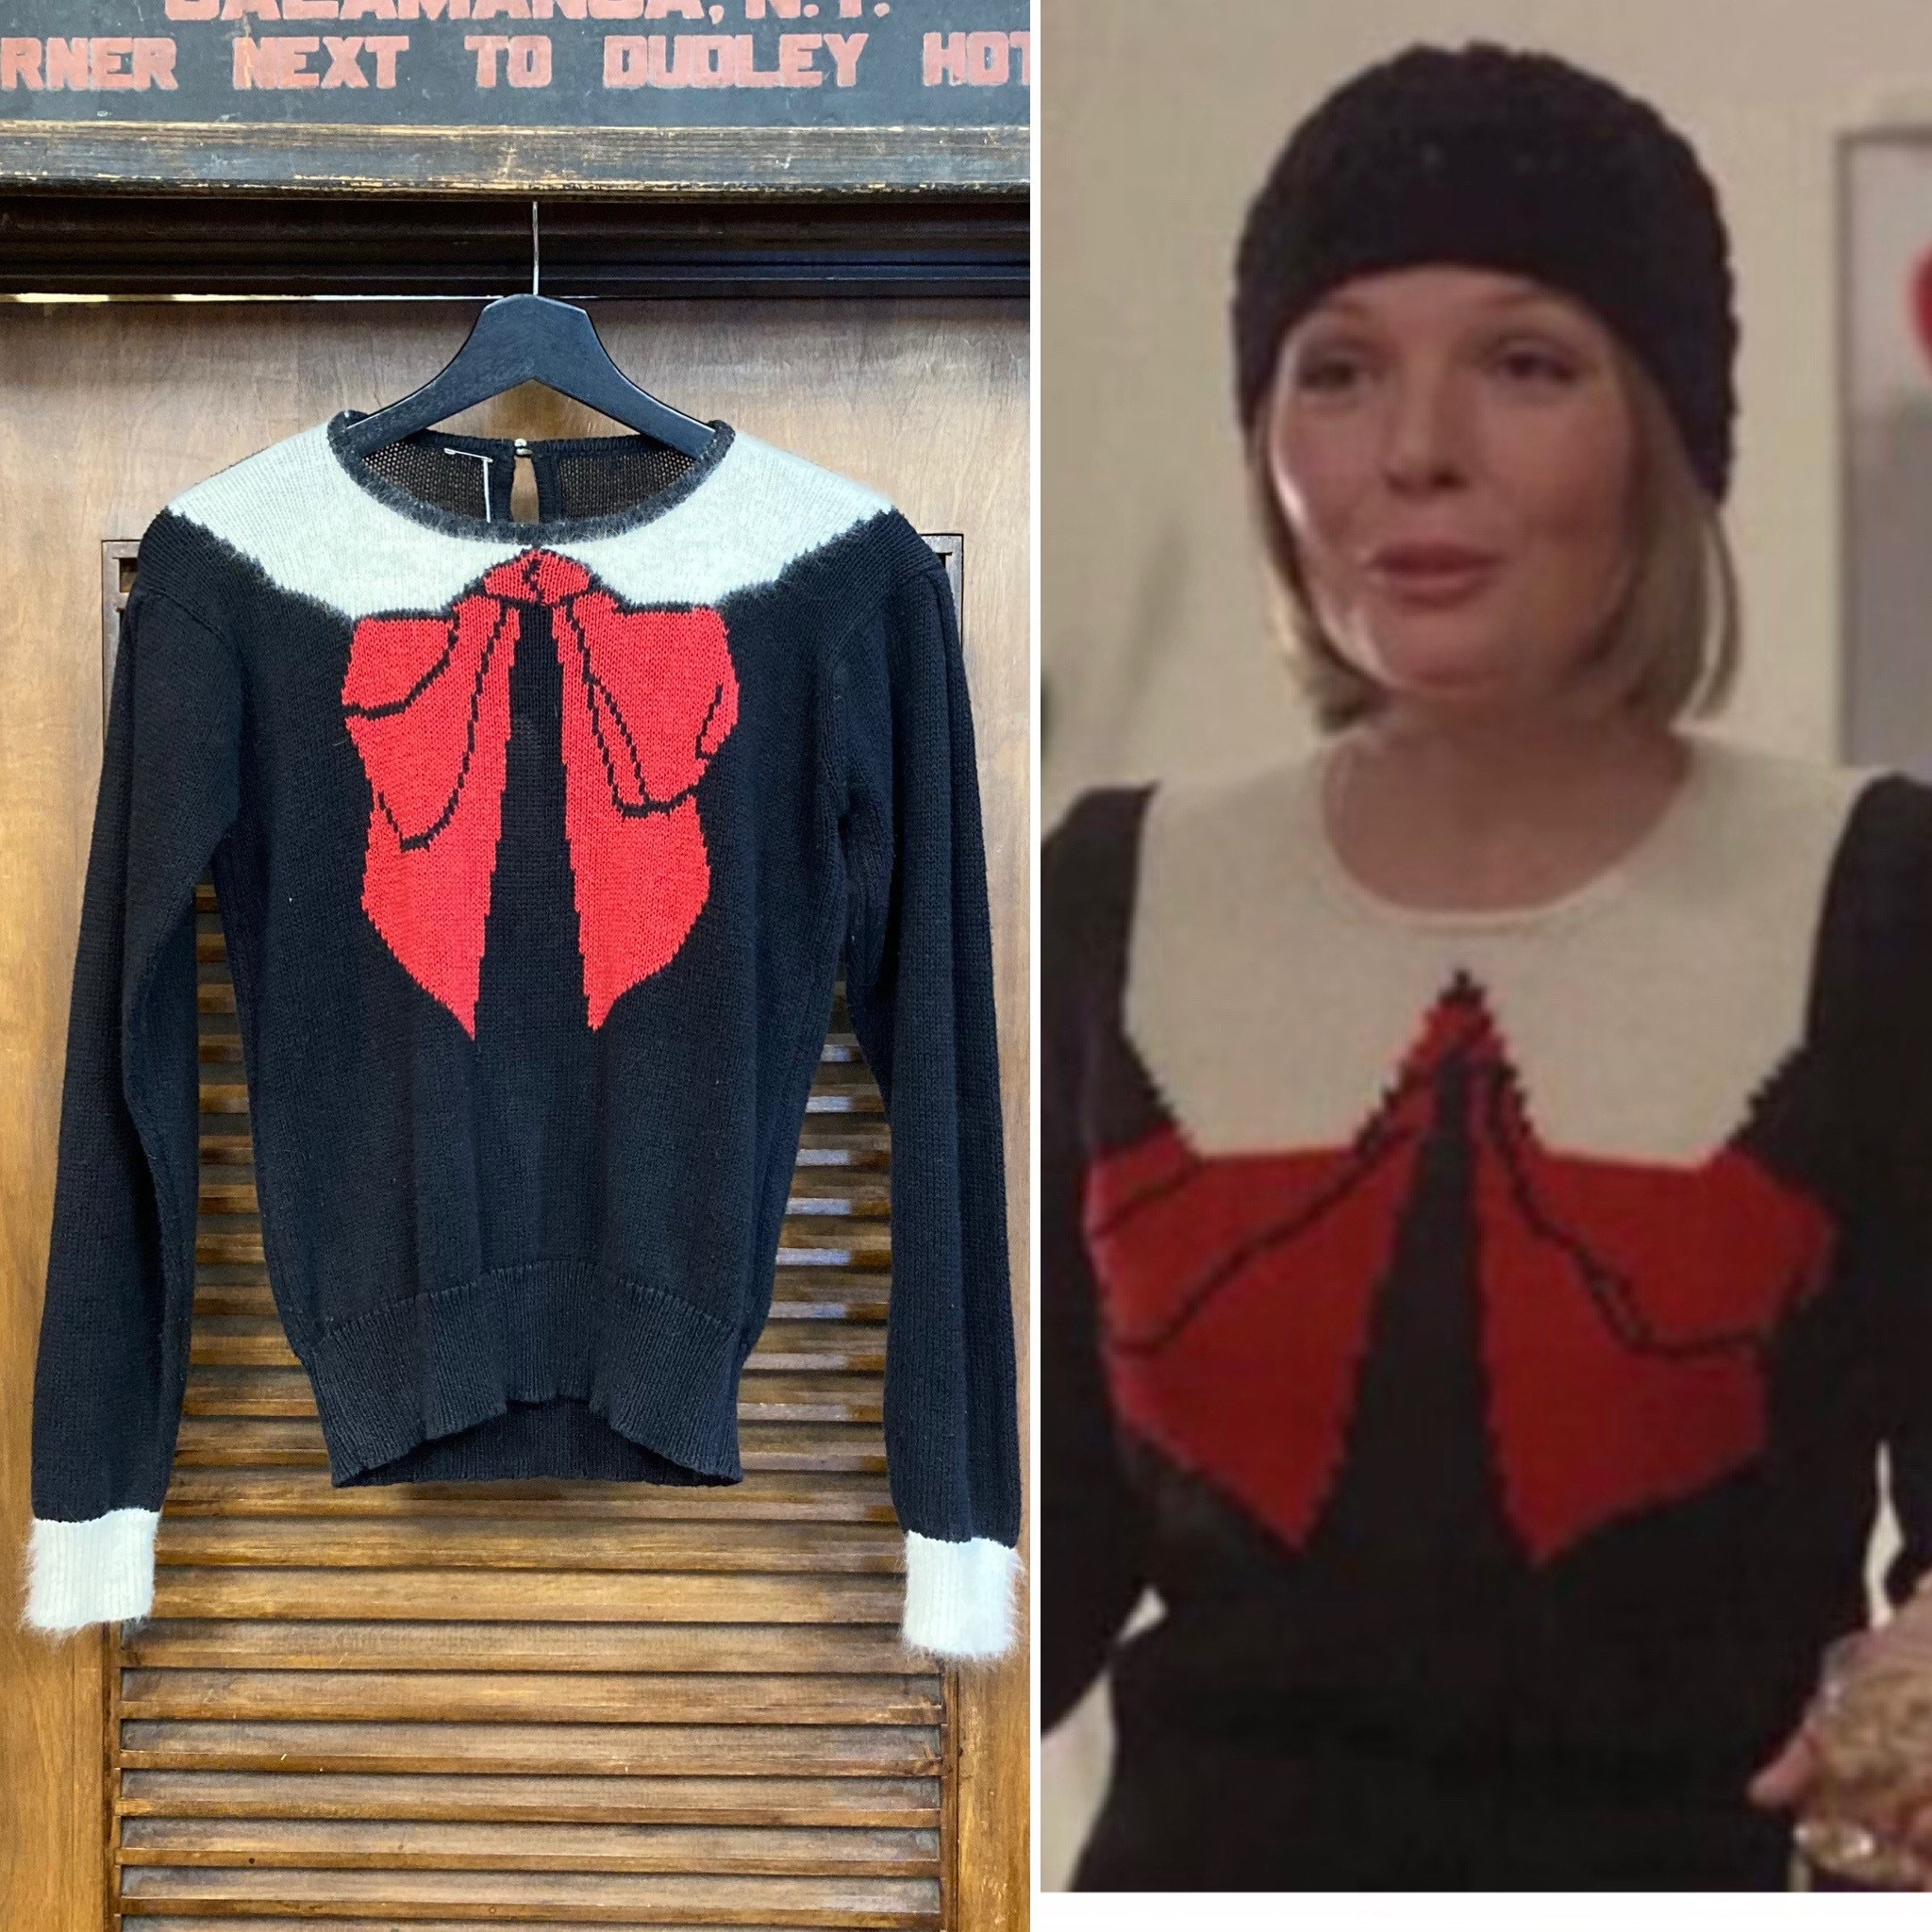 80s Sweatshirts, Sweaters, Vests | Women Vintage 1980s Trompe Loeil Knit Ribbon Bow Sweater - Diane Keaton Play It Again Sam - 80s Sweater, Pullover, Clothing $250.00 AT vintagedancer.com